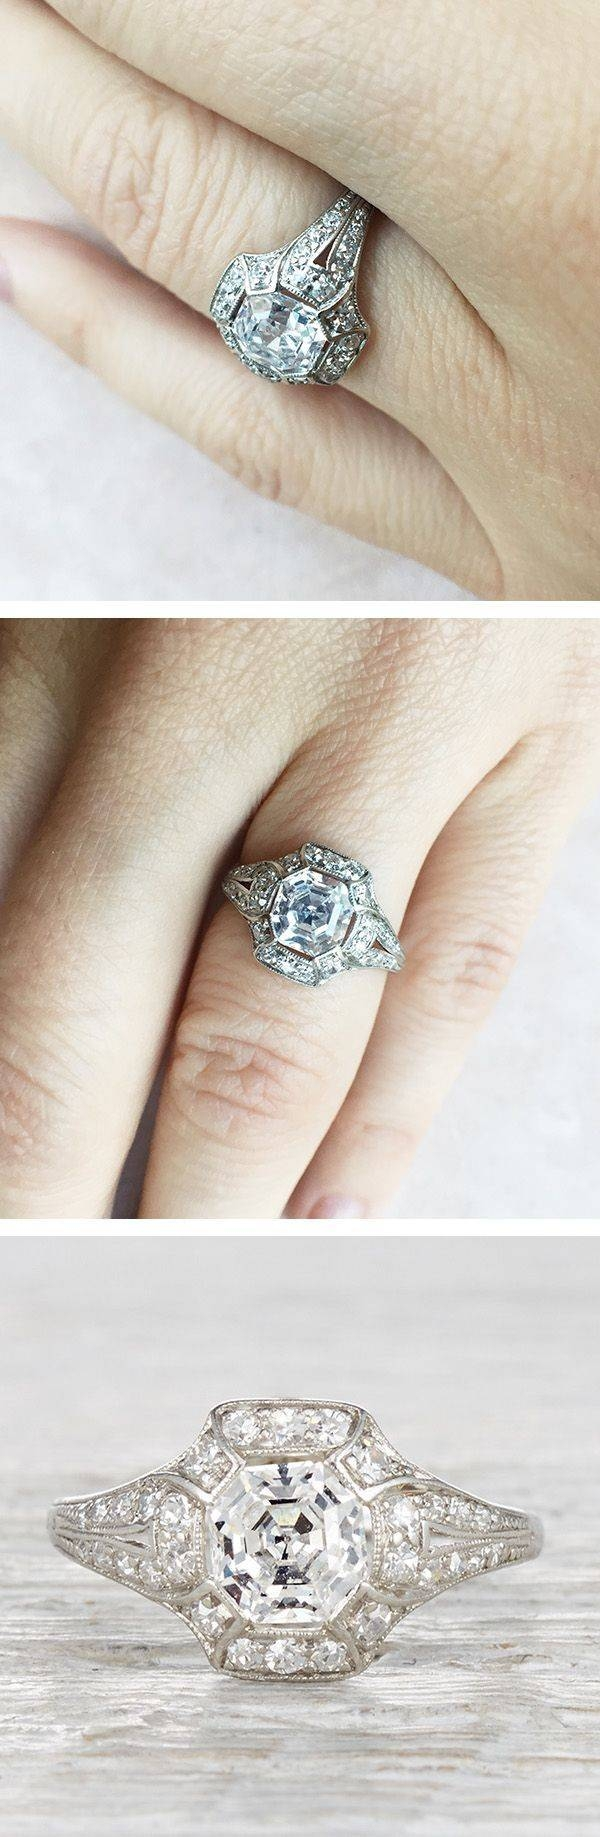 Best 25+ Vintage Anniversary Rings Ideas On Pinterest | Engagement With Regard To Most Up To Date First Year Anniversary Rings (Gallery 12 of 25)